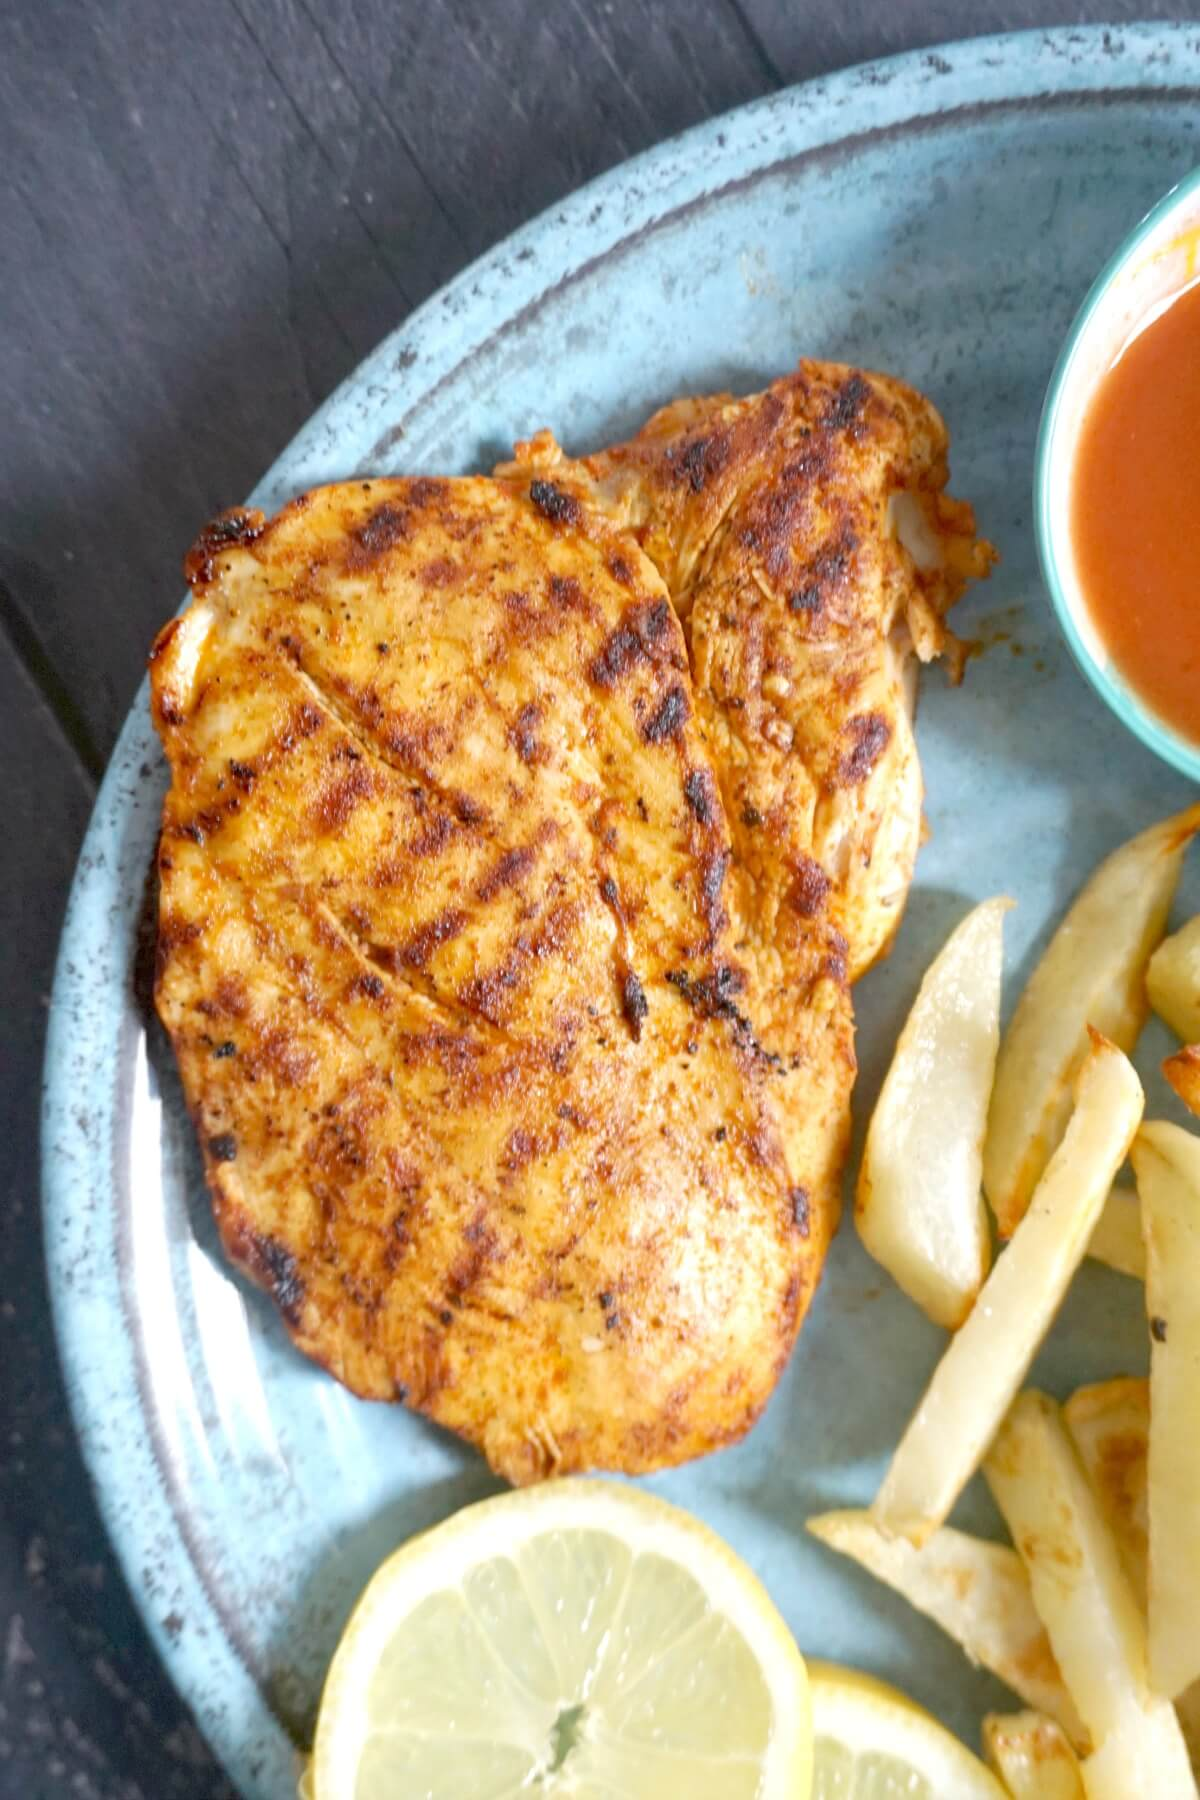 Close-up shoot of a butteflied chicken breast on a blue plate with chips and a sauce in a small bowl